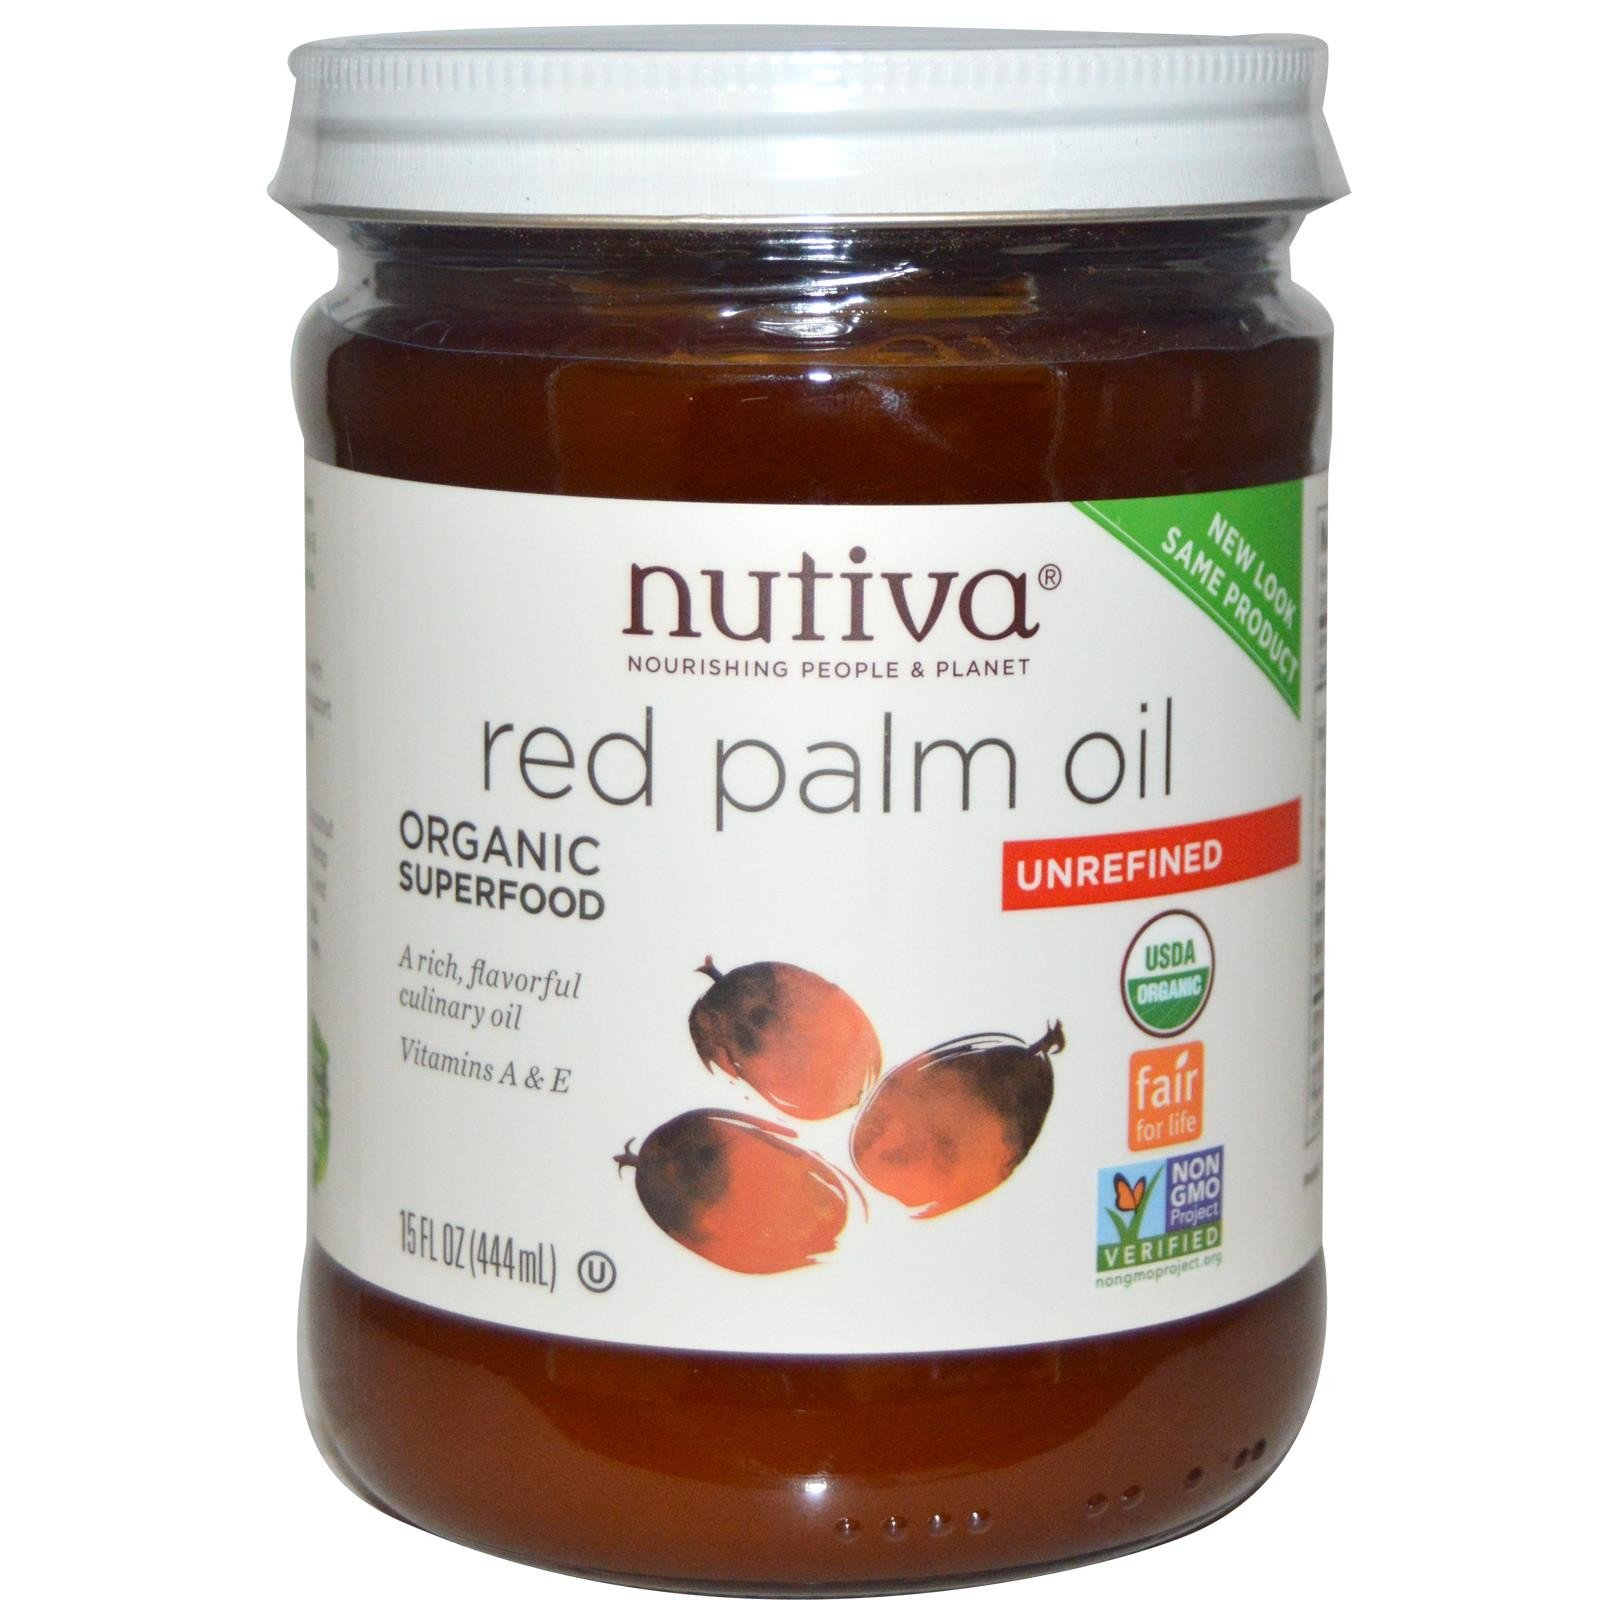 Nutiva Organic Red Palm Oil 15 oz (Pack of 2) by Nutiva (Image #1)